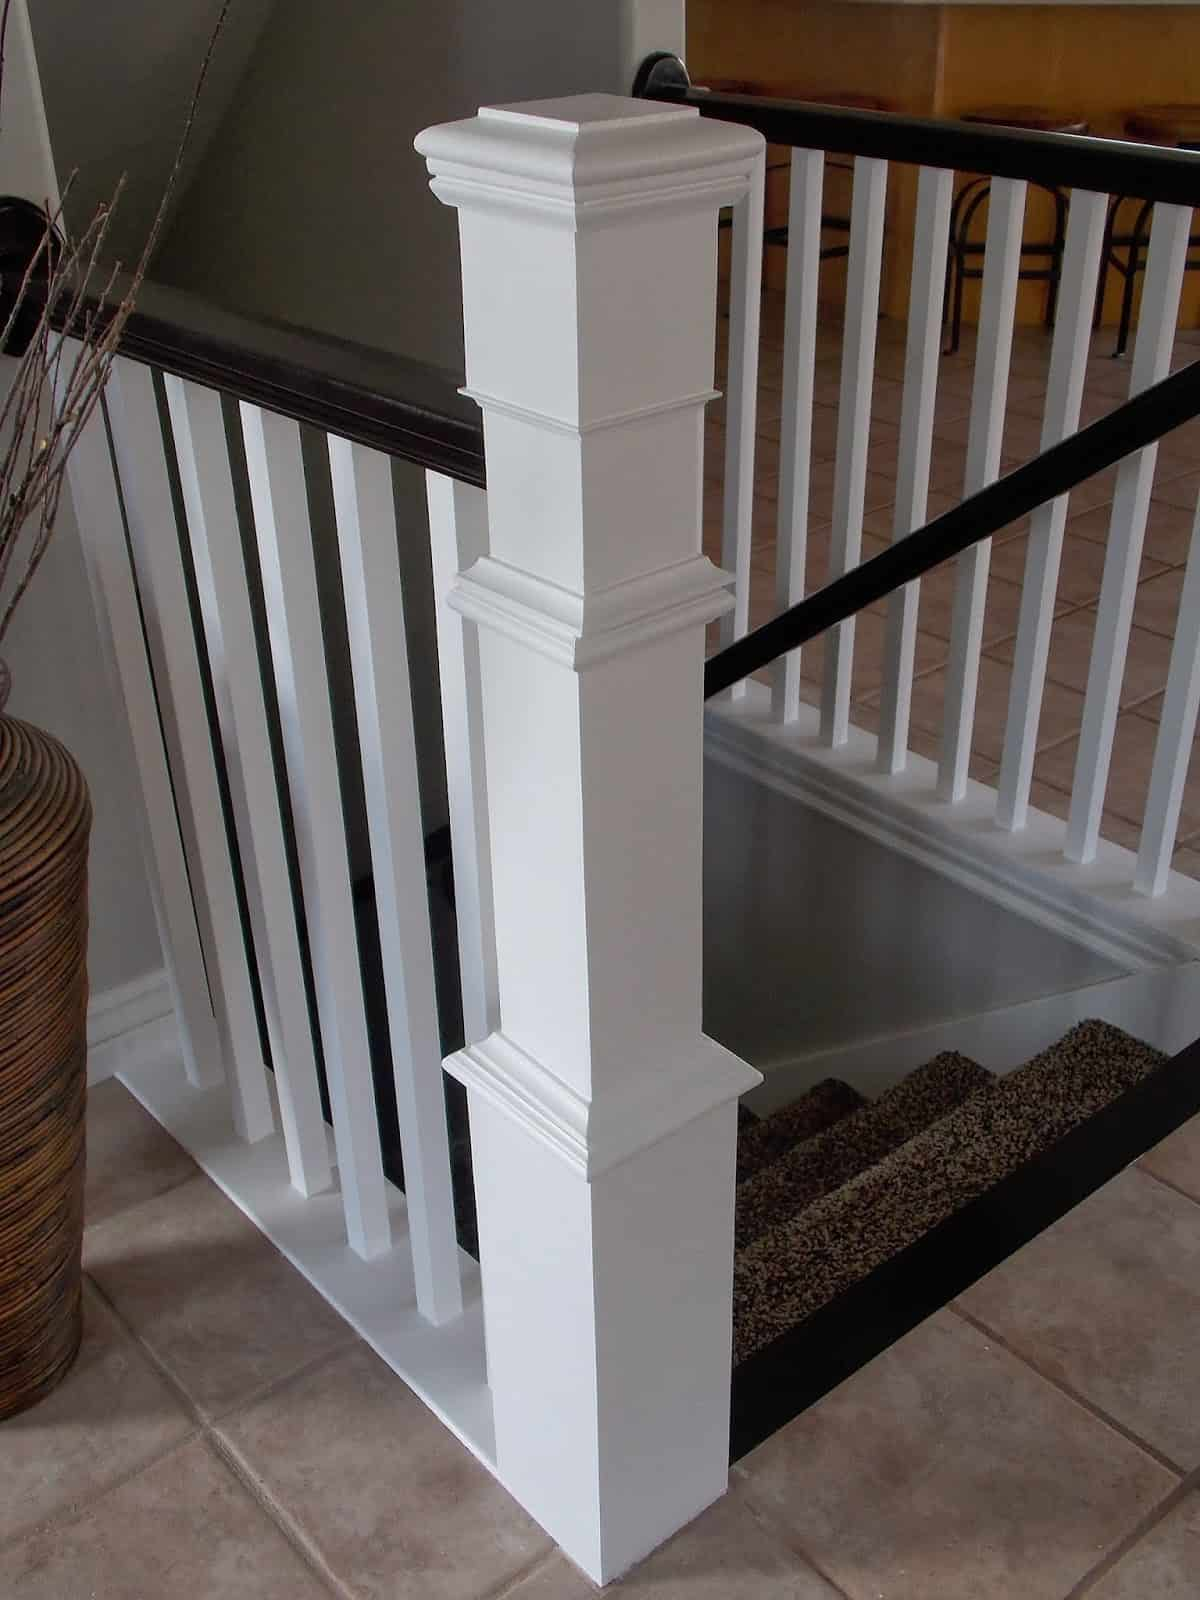 DIY stair banister rennovation using existing railing and newel post